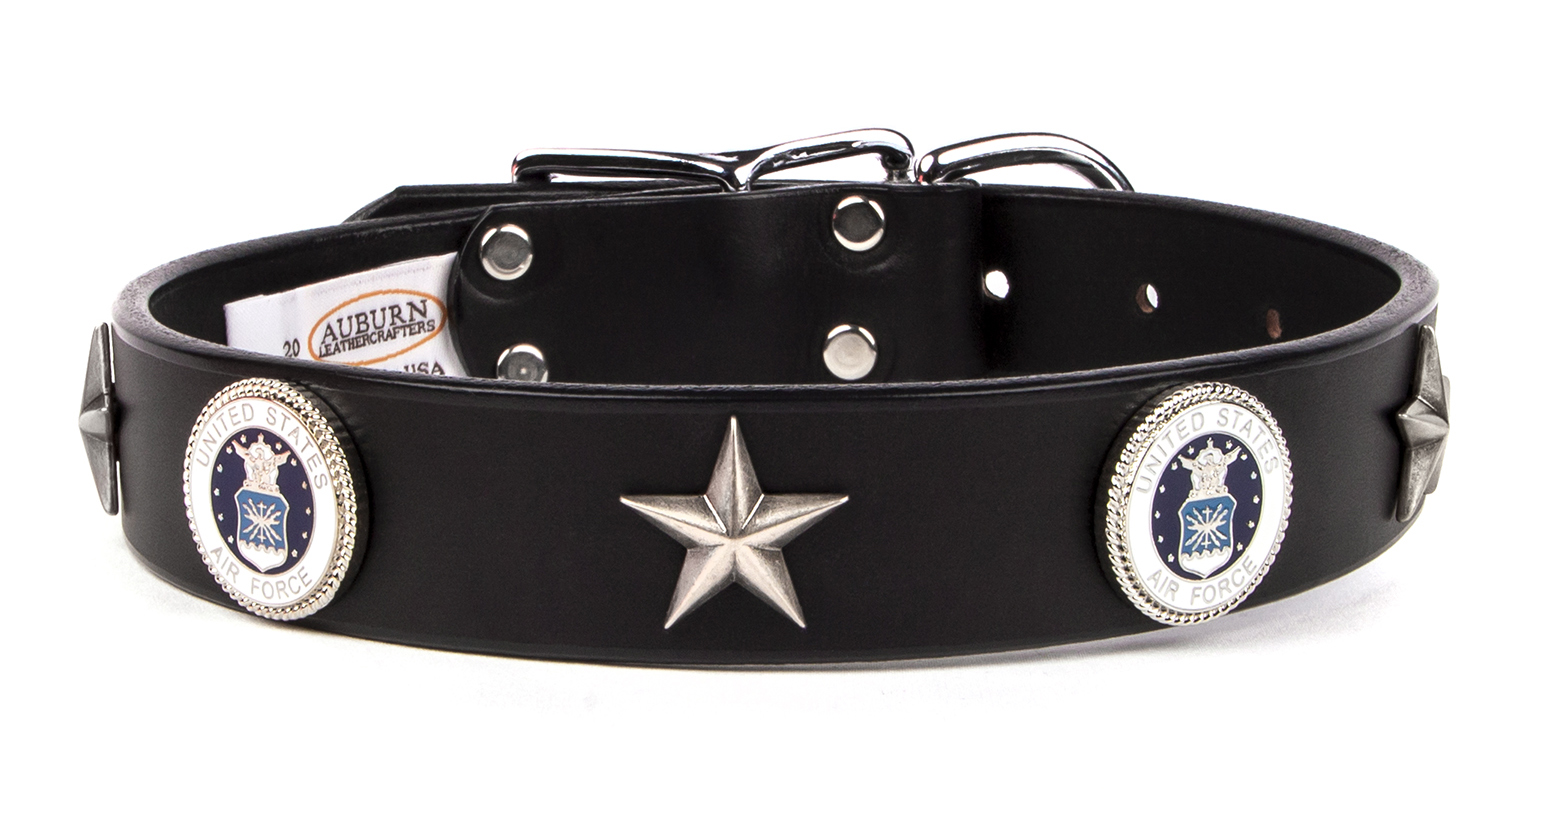 Air force  emblem leather dog collar from Auburn Leathercrafters. Great gift for a friend or loved one in the air force that loves dogs.